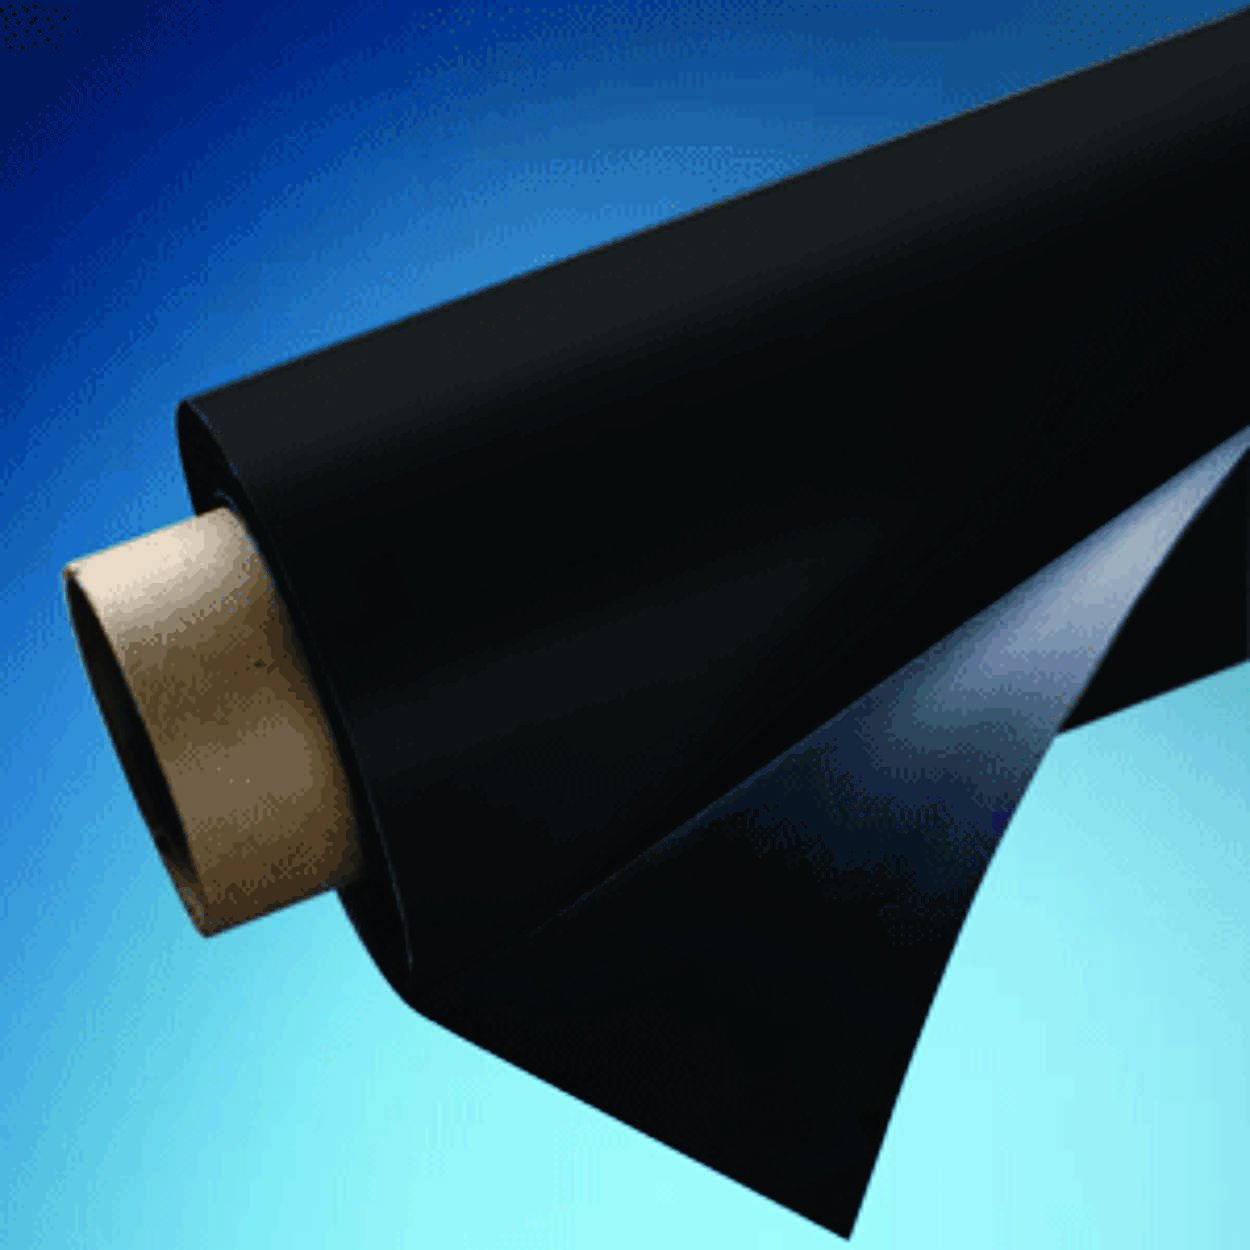 24'' X 10' Roll Magnetic Sheeting - Black Vinyl by ProMag